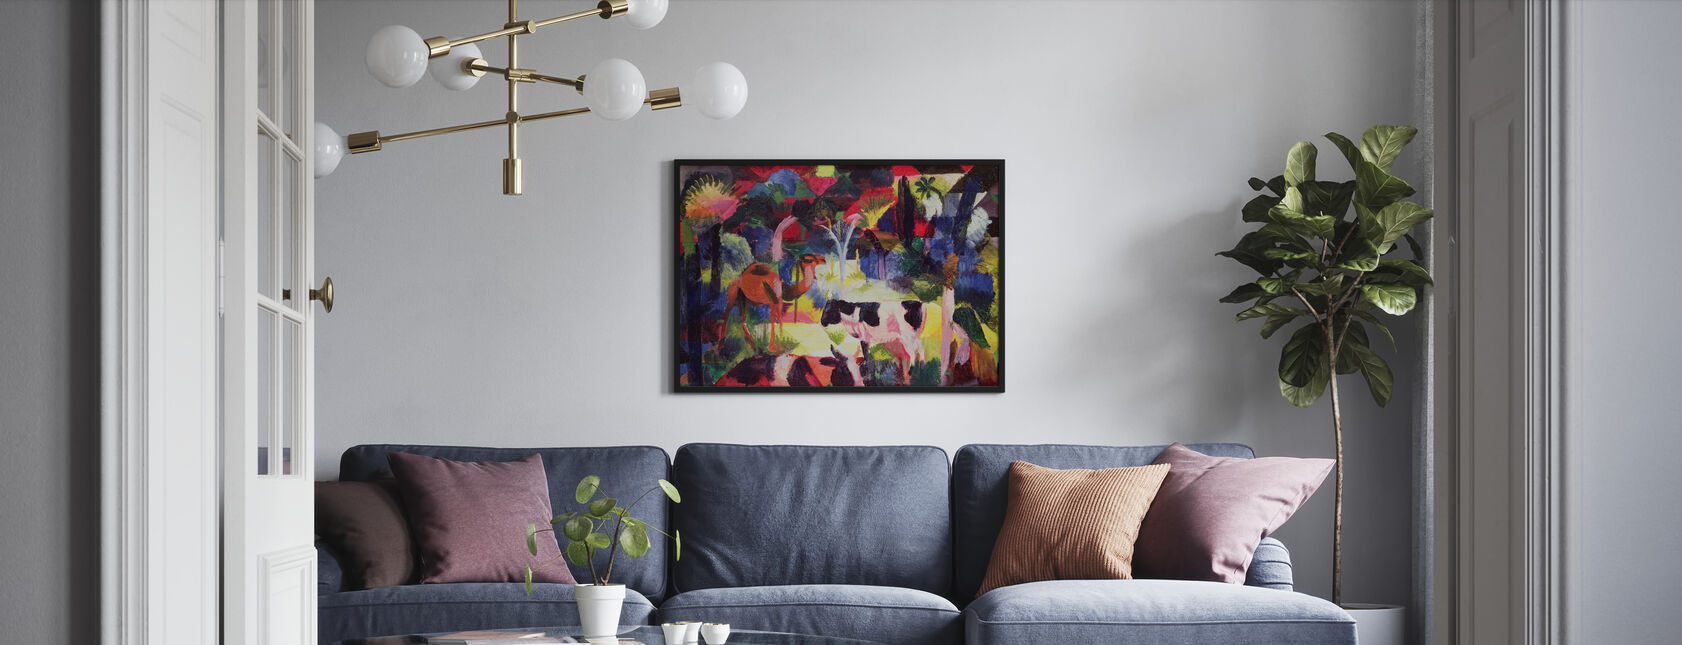 Cows and a Camel, August Macke - Framed print - Living Room